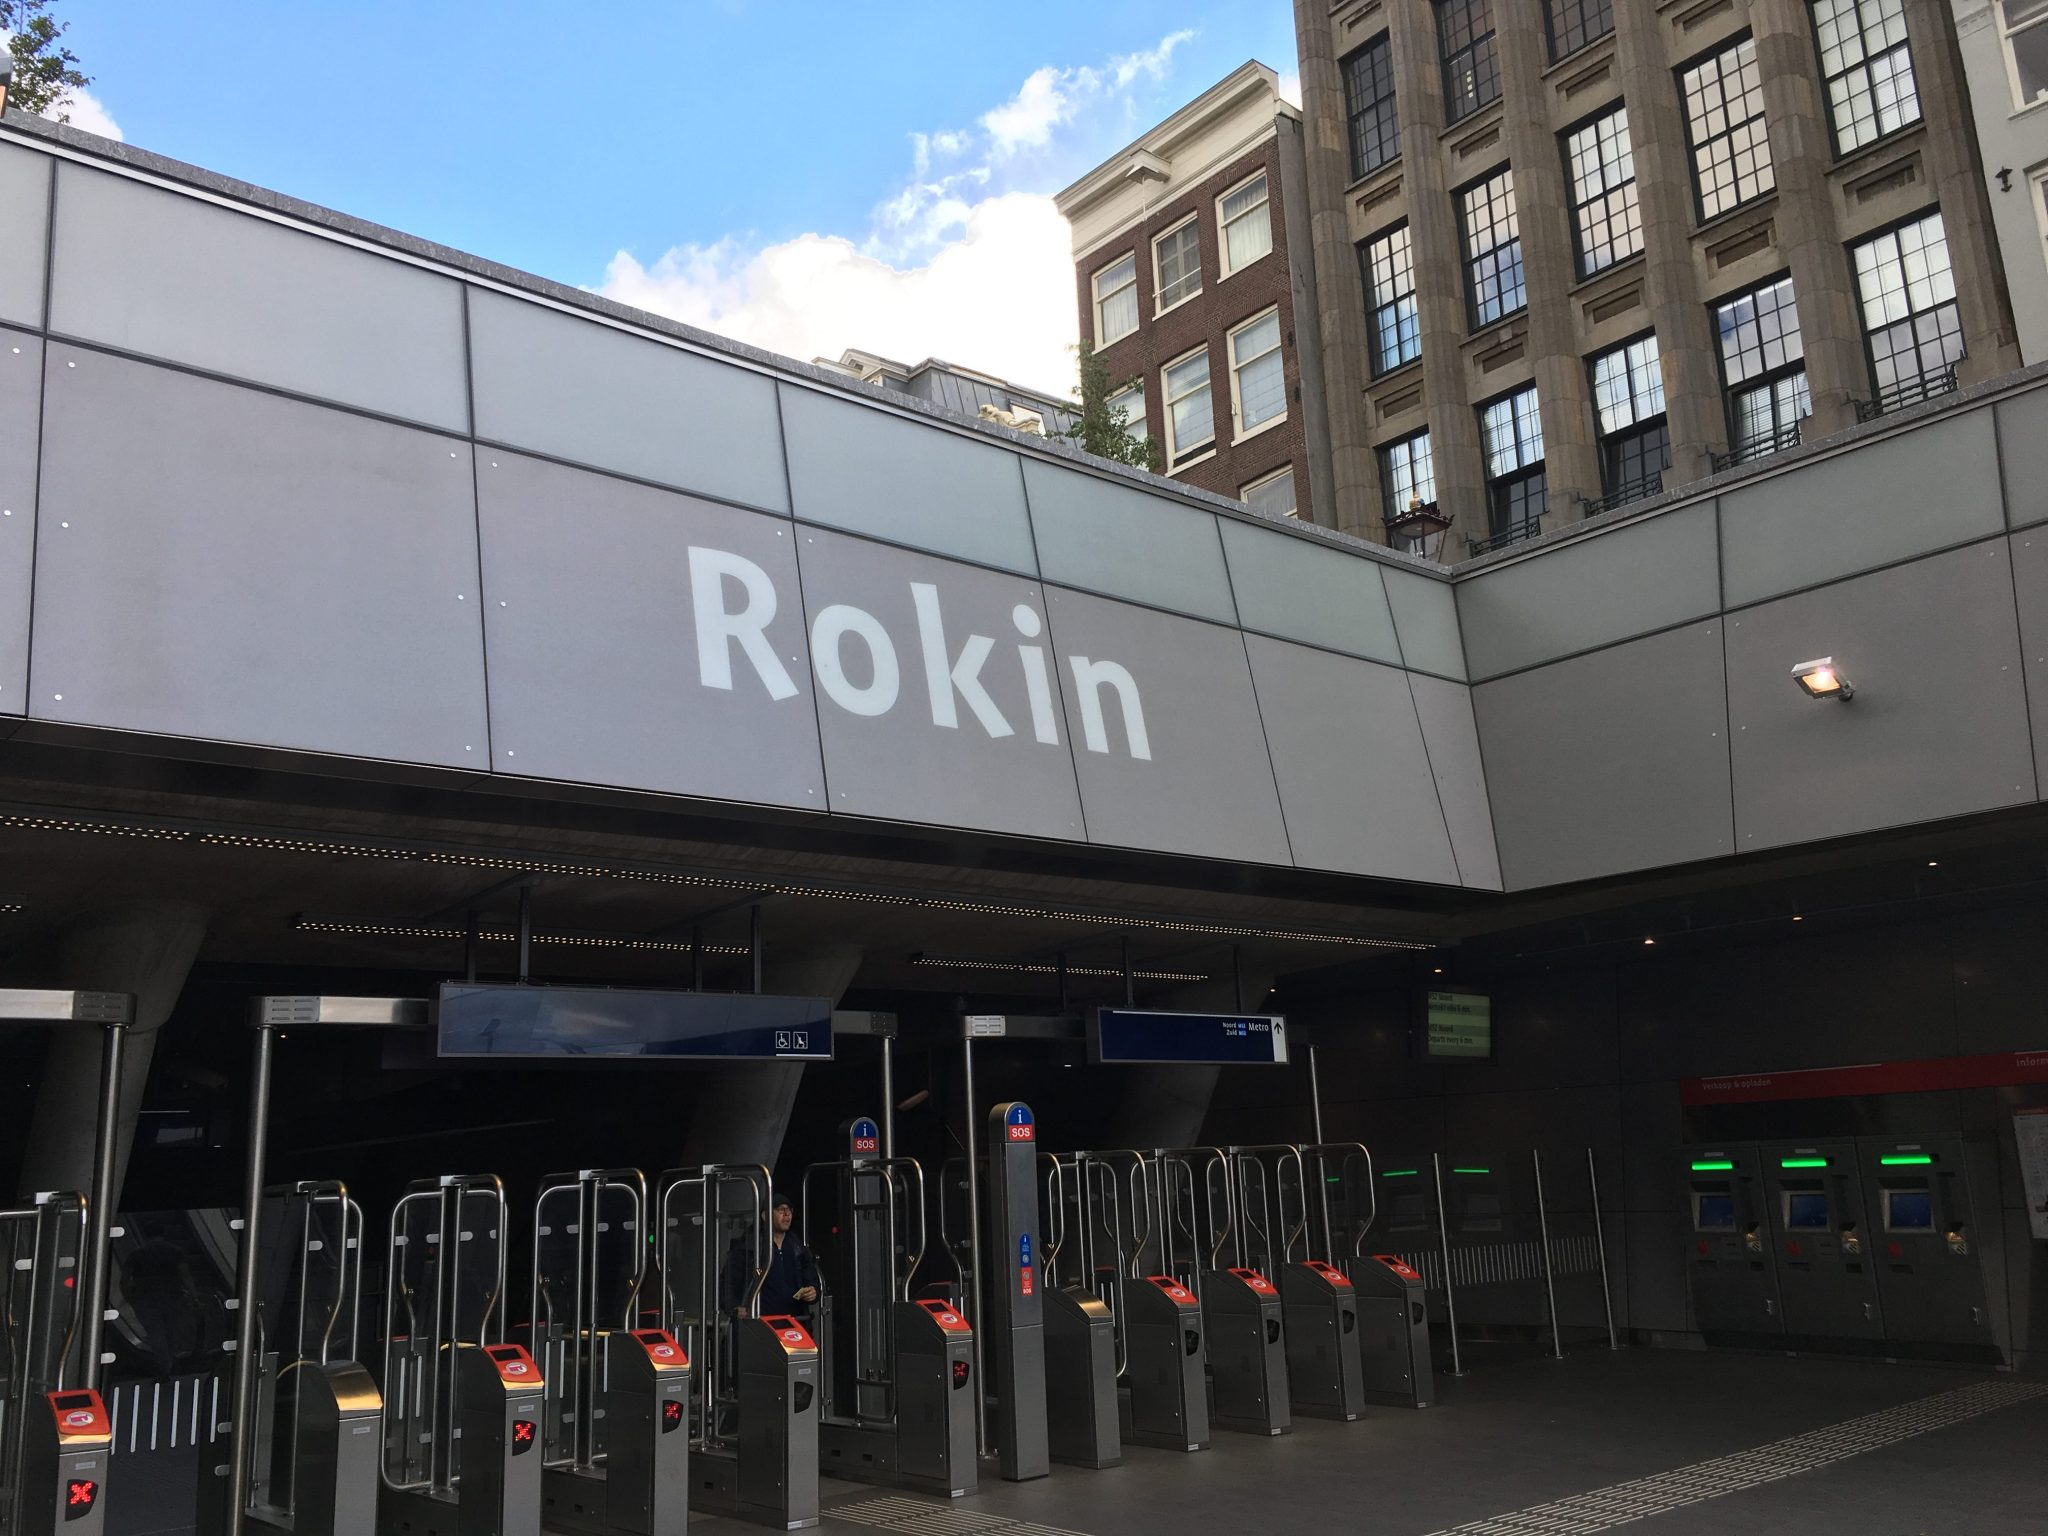 Thousands of historical excavations in an artwork display at the North / South line between the escalators at Rokin station